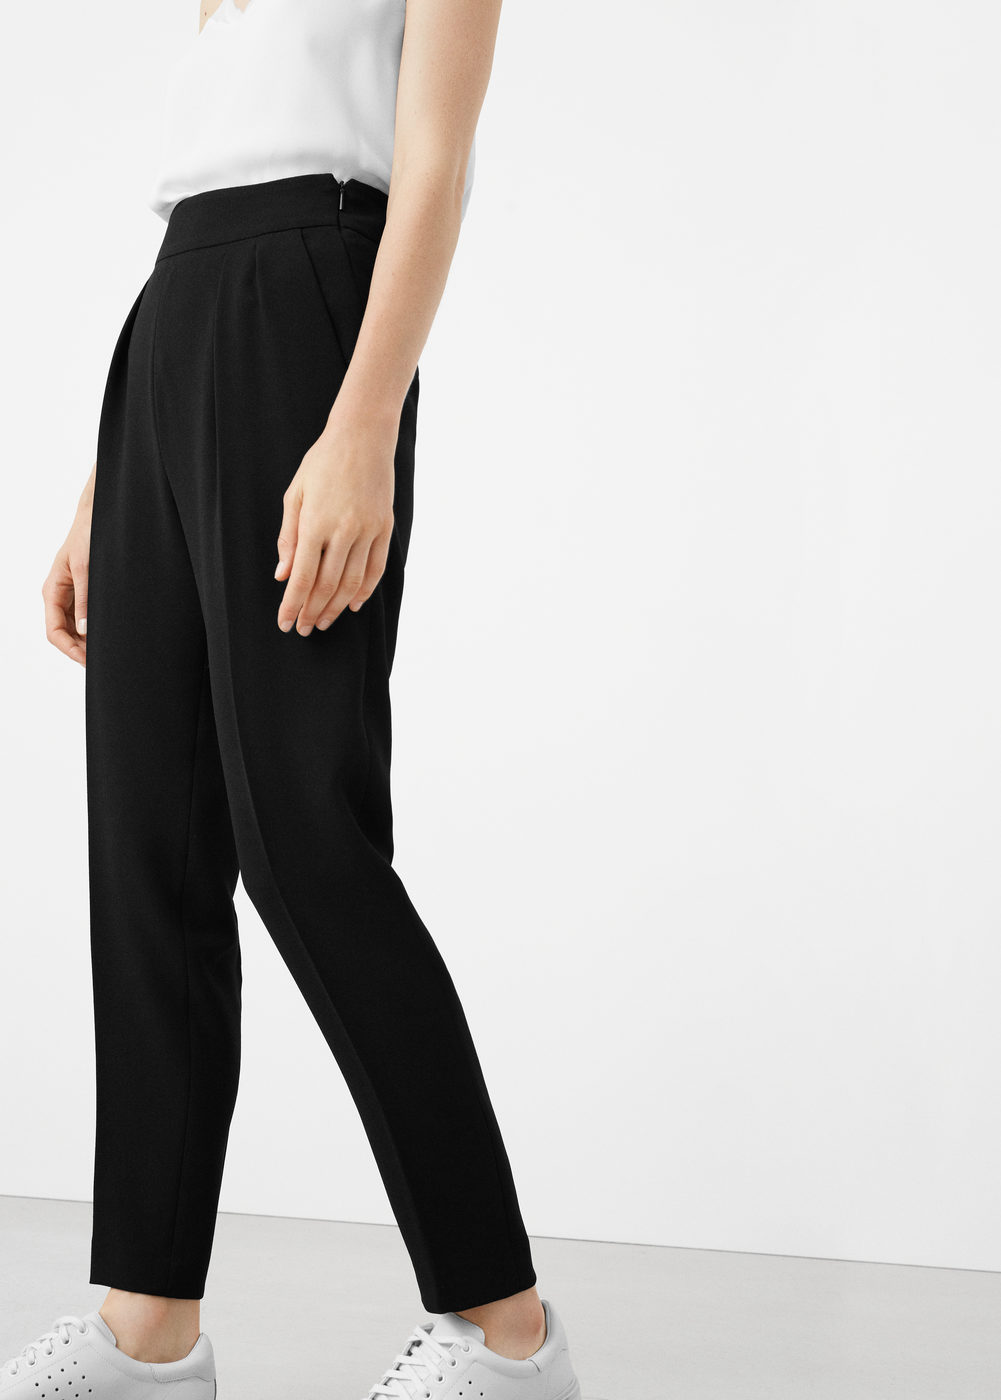 These   are the perfect everyday trouser that fit just right, I could definitely see myself living in these.